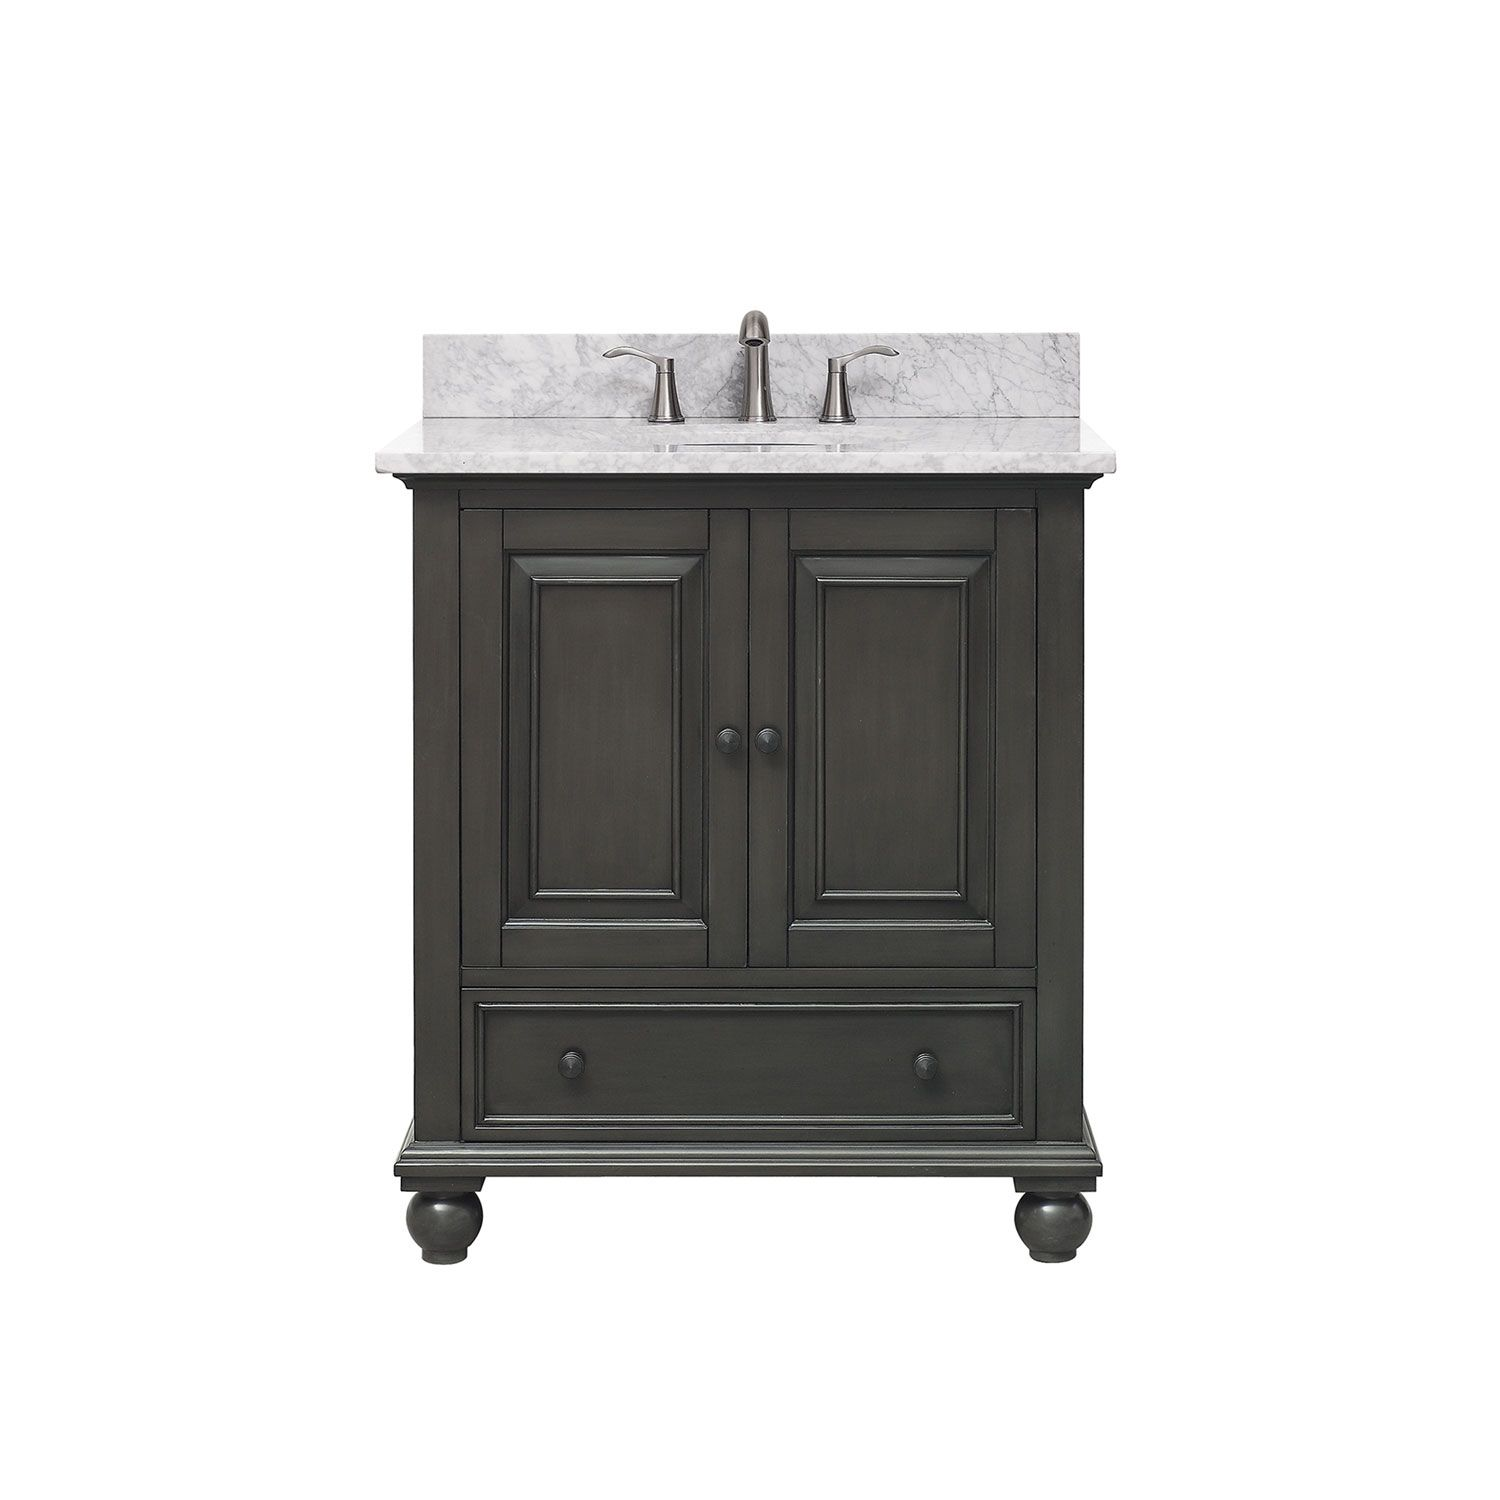 Avanity Thompson Charcoal Glaze 31 Inch Vanity Combo Thompson Vs30